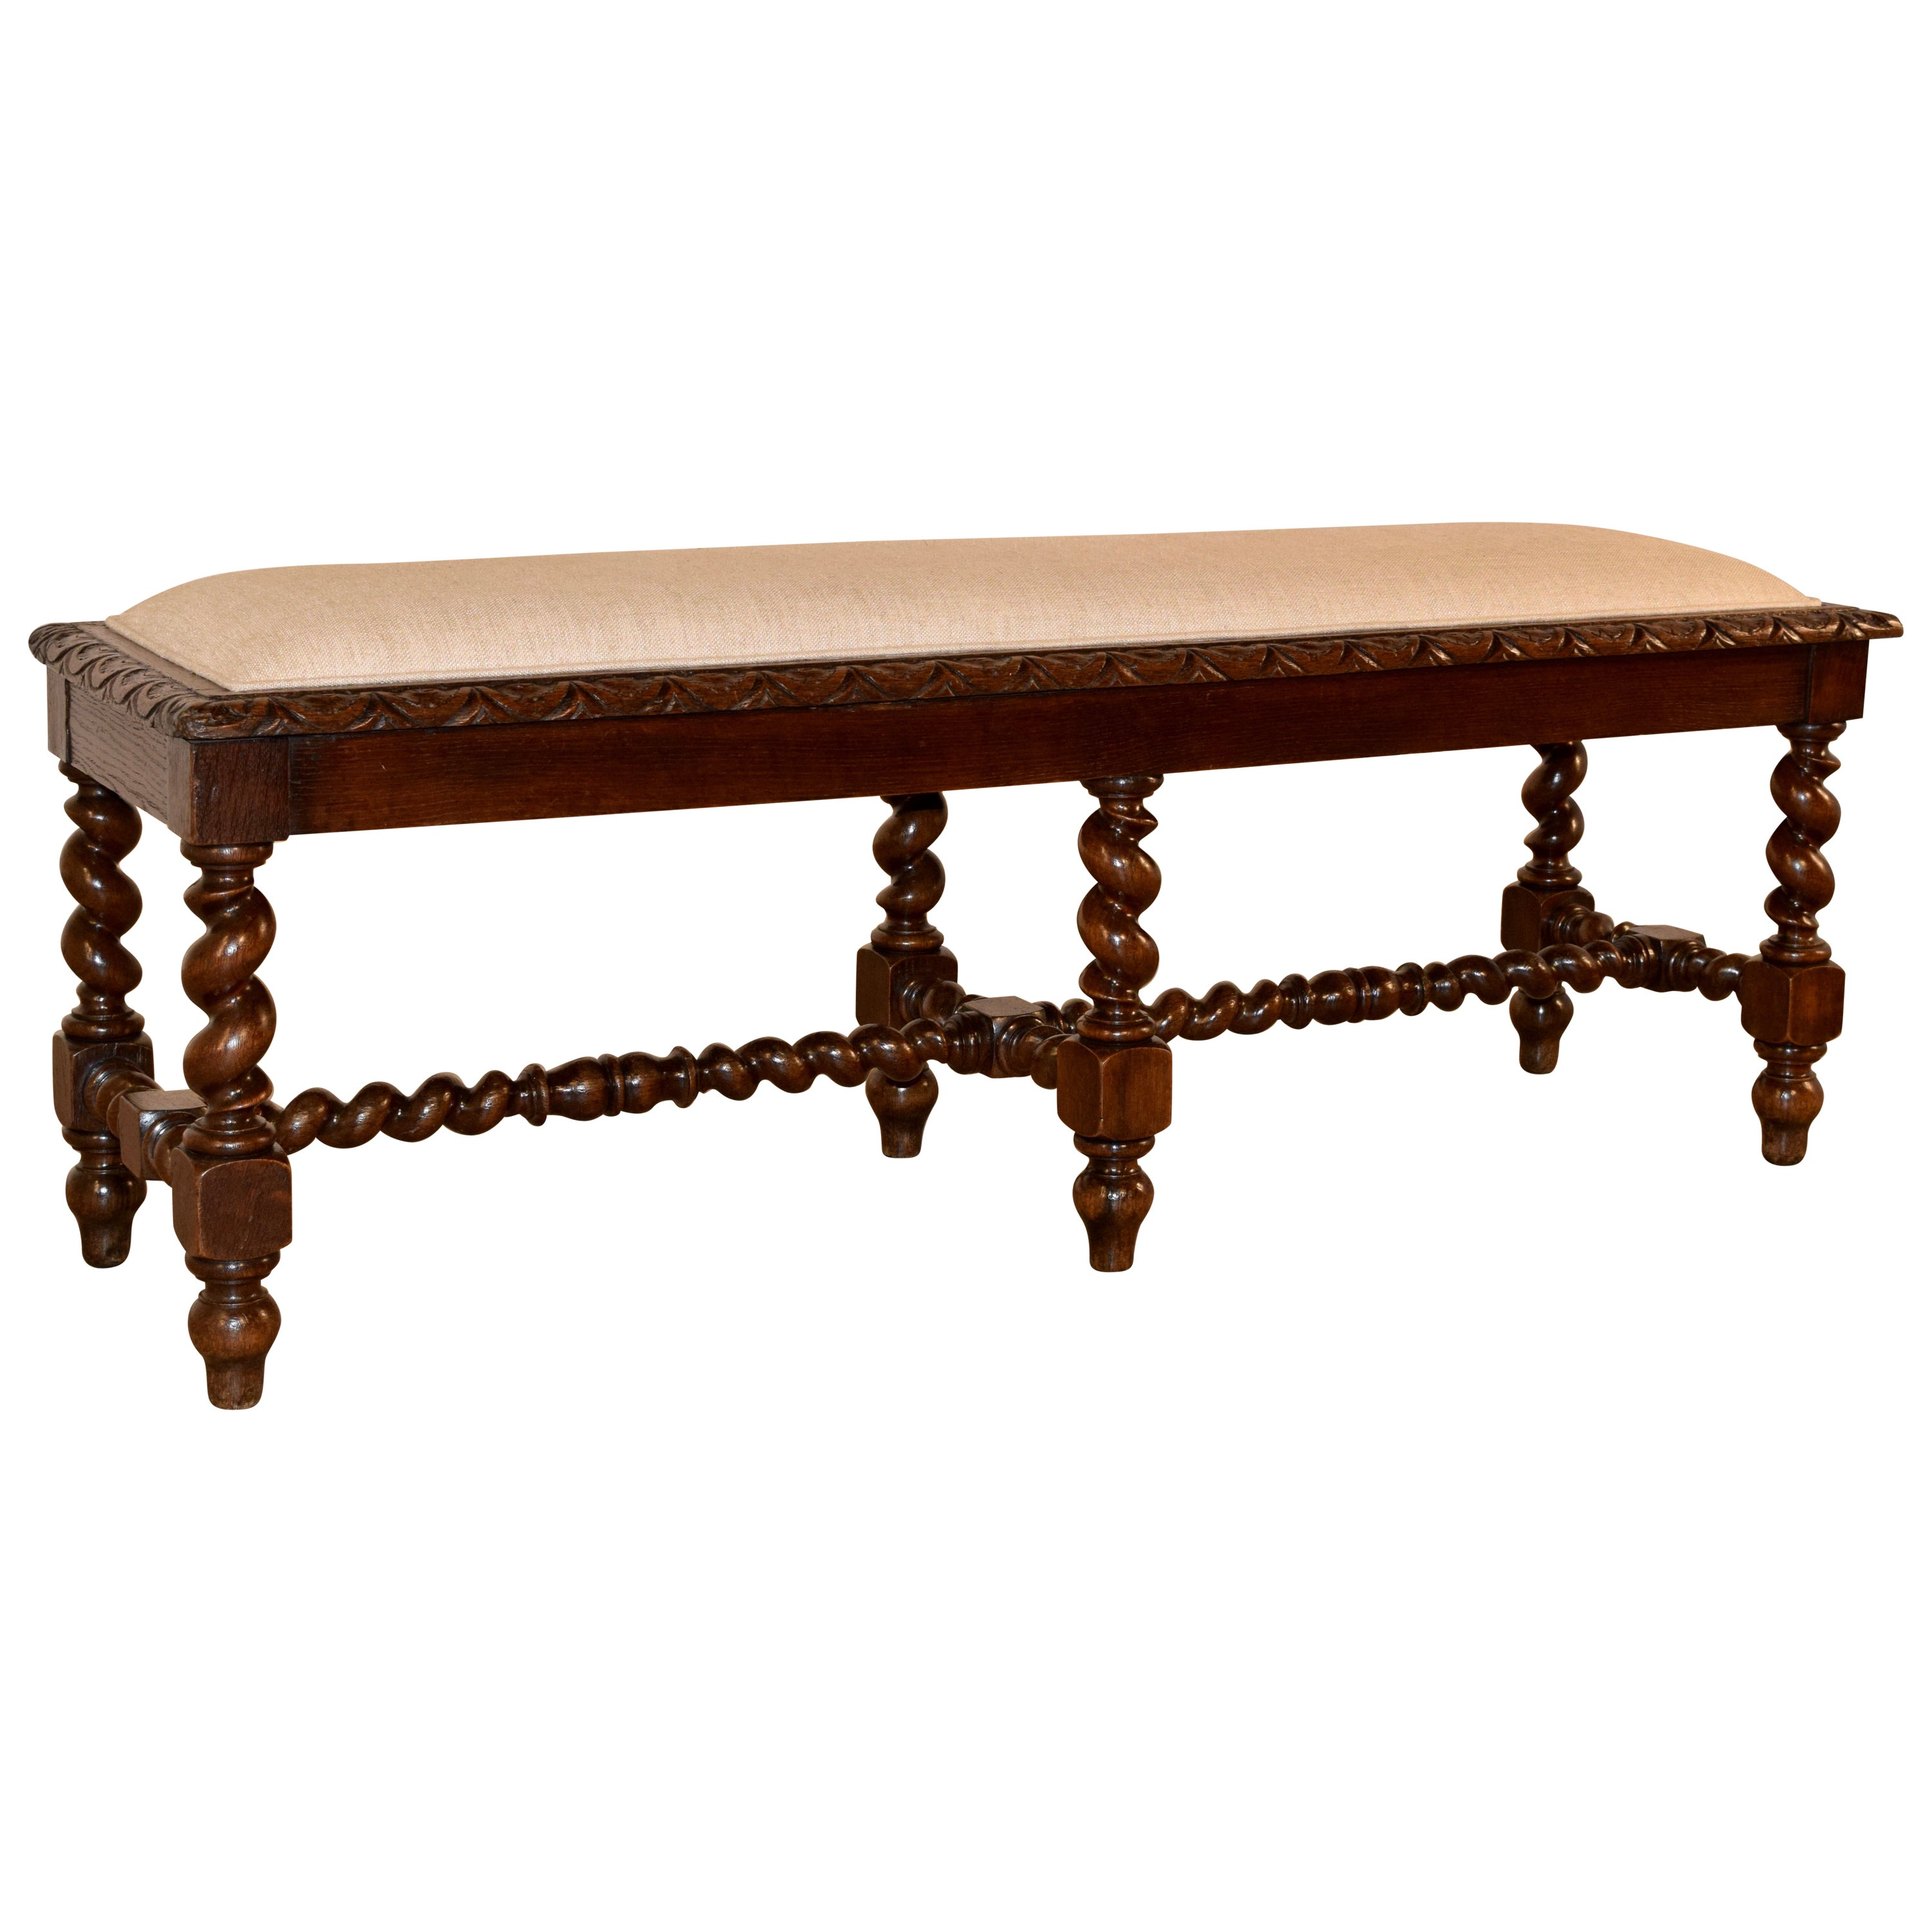 19th Century Upholstered French Bench